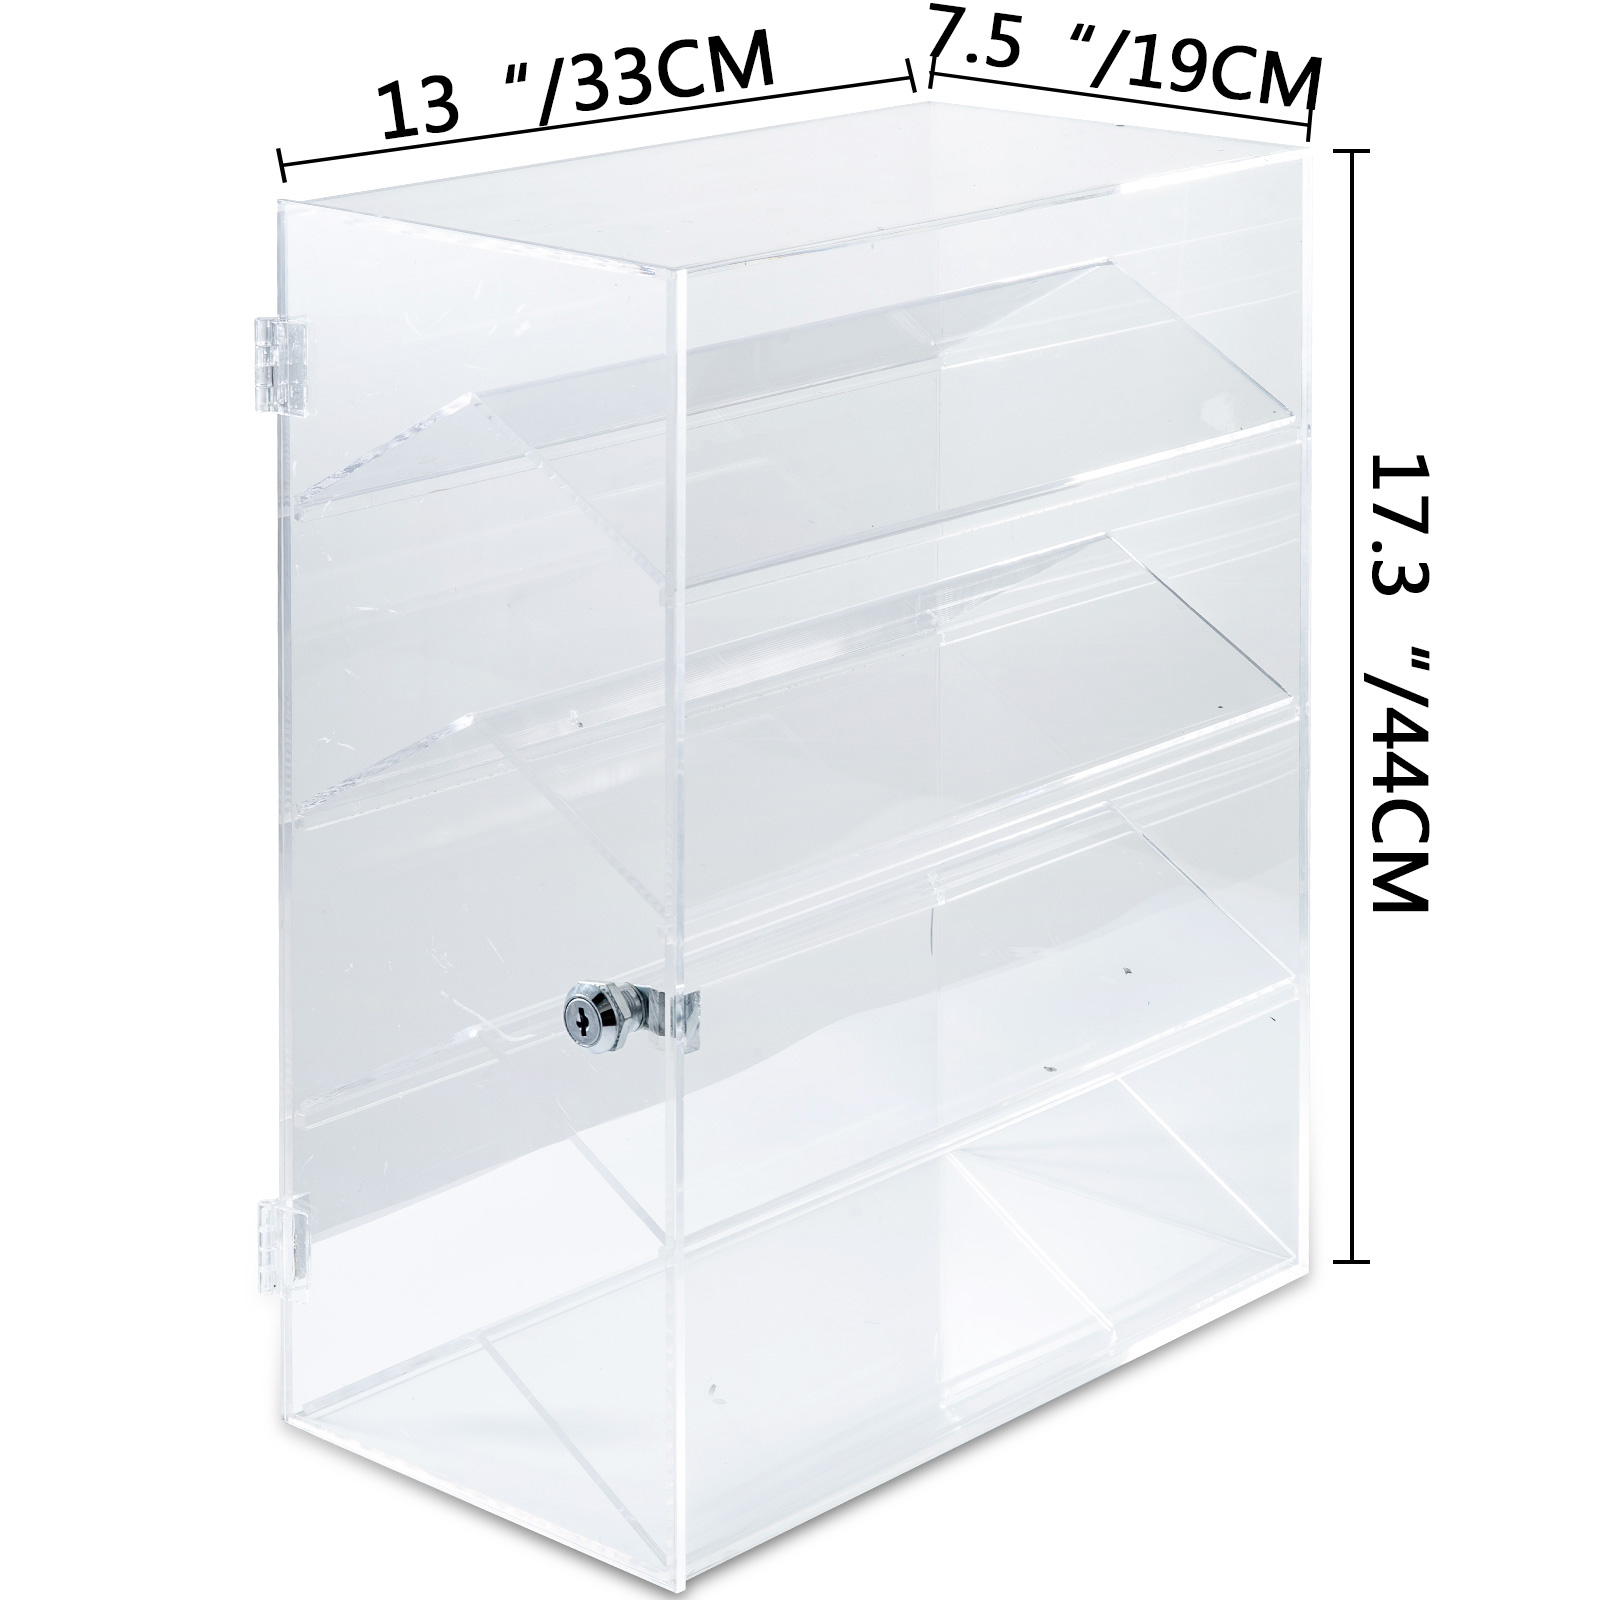 thumbnail 140 - 2-3-4-Shelves-Acrylic-Display-Cabinet-Glued-Unassembled-Bakery-Clear-Pastry